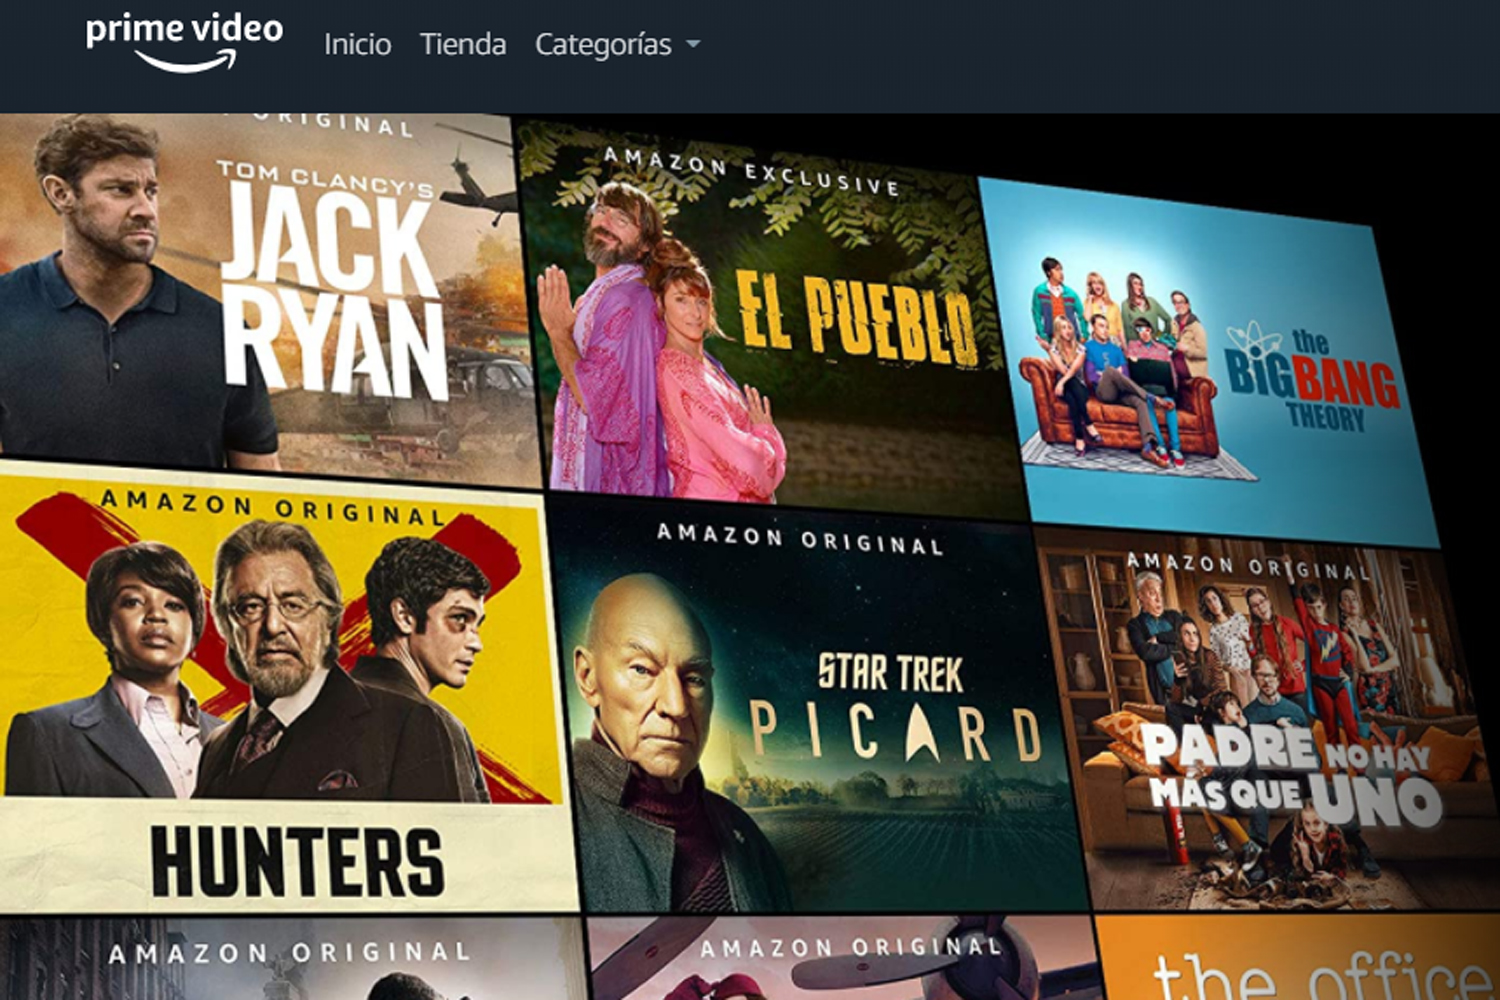 Troyanos y suplantación de identidad Amazon Prime Video